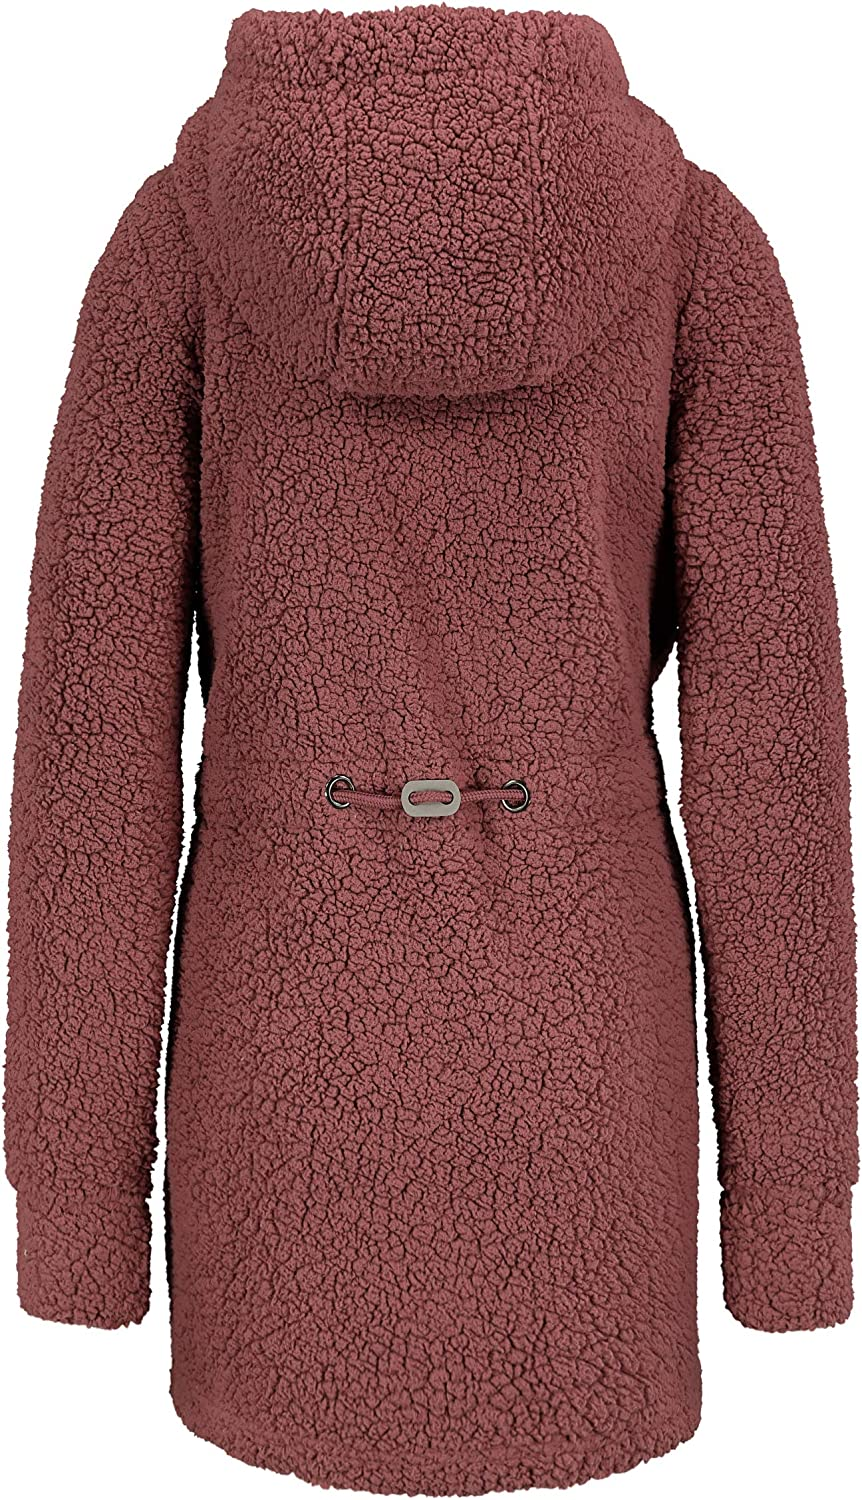 Sublevel Warmer Damen Teddy Fleece Mantel Jacke mit Kapuze Dark-rose